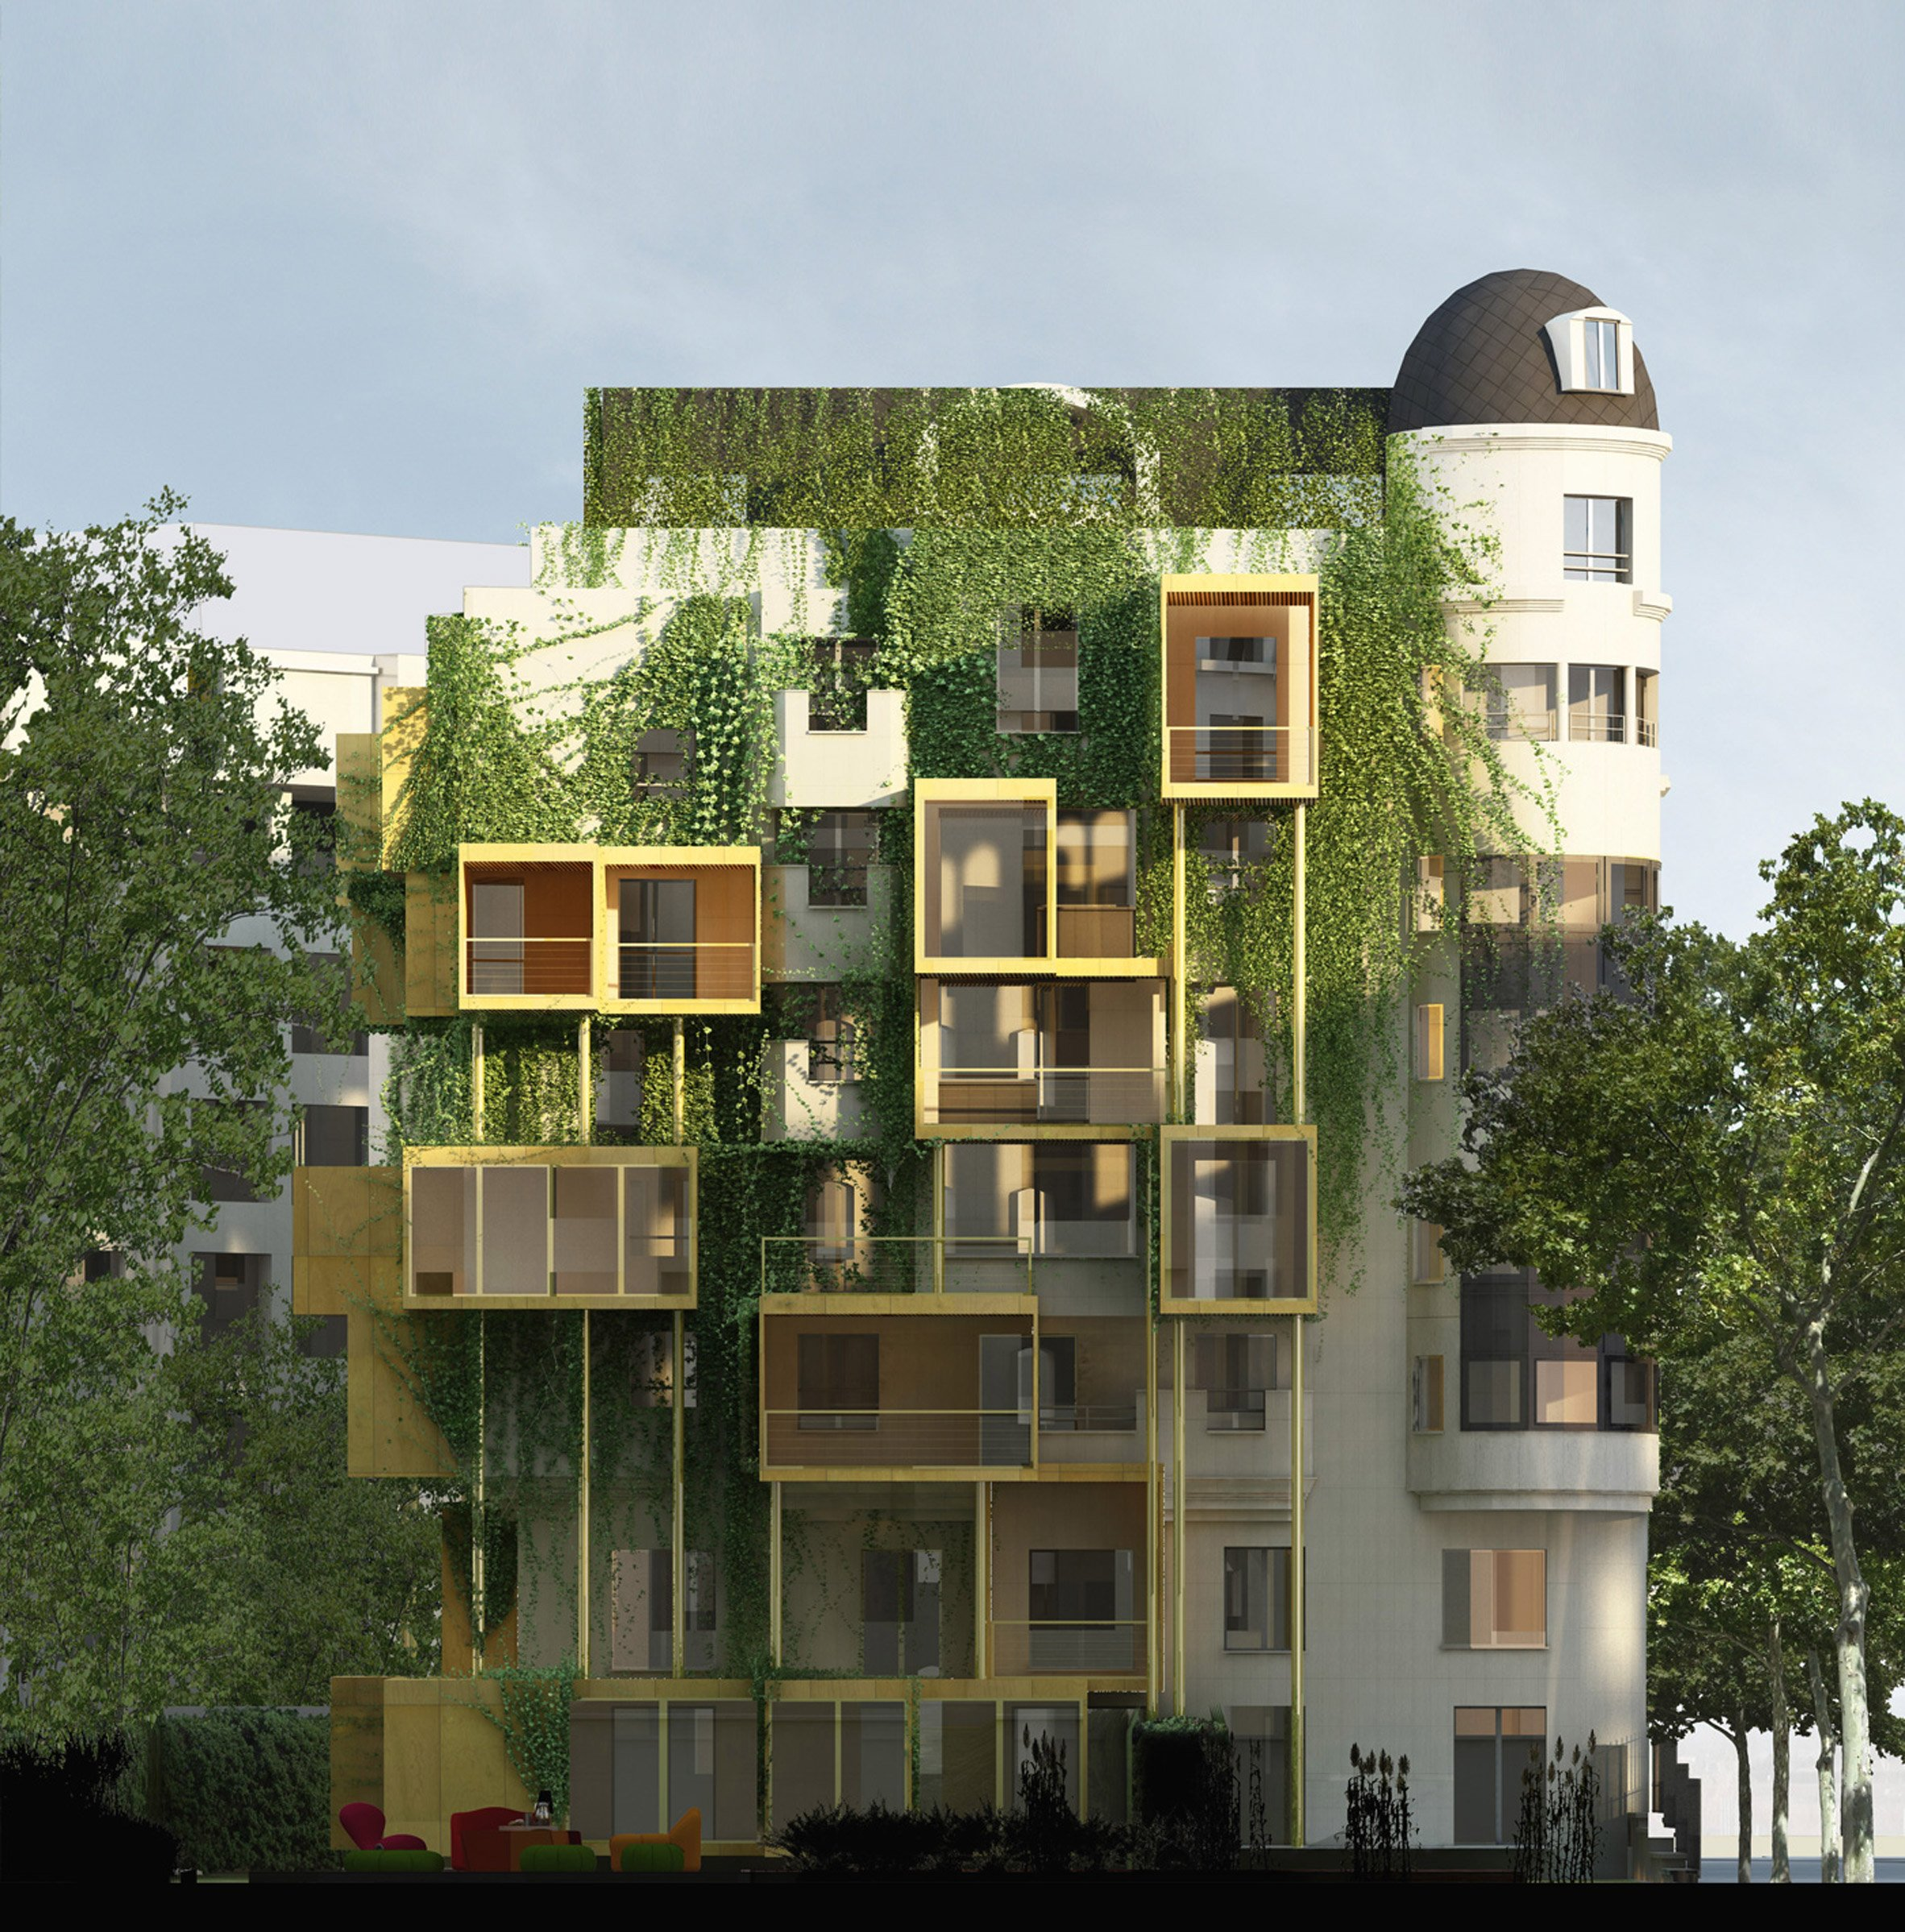 Parasitic extensions to Paris apartment building could reduce energy consumption